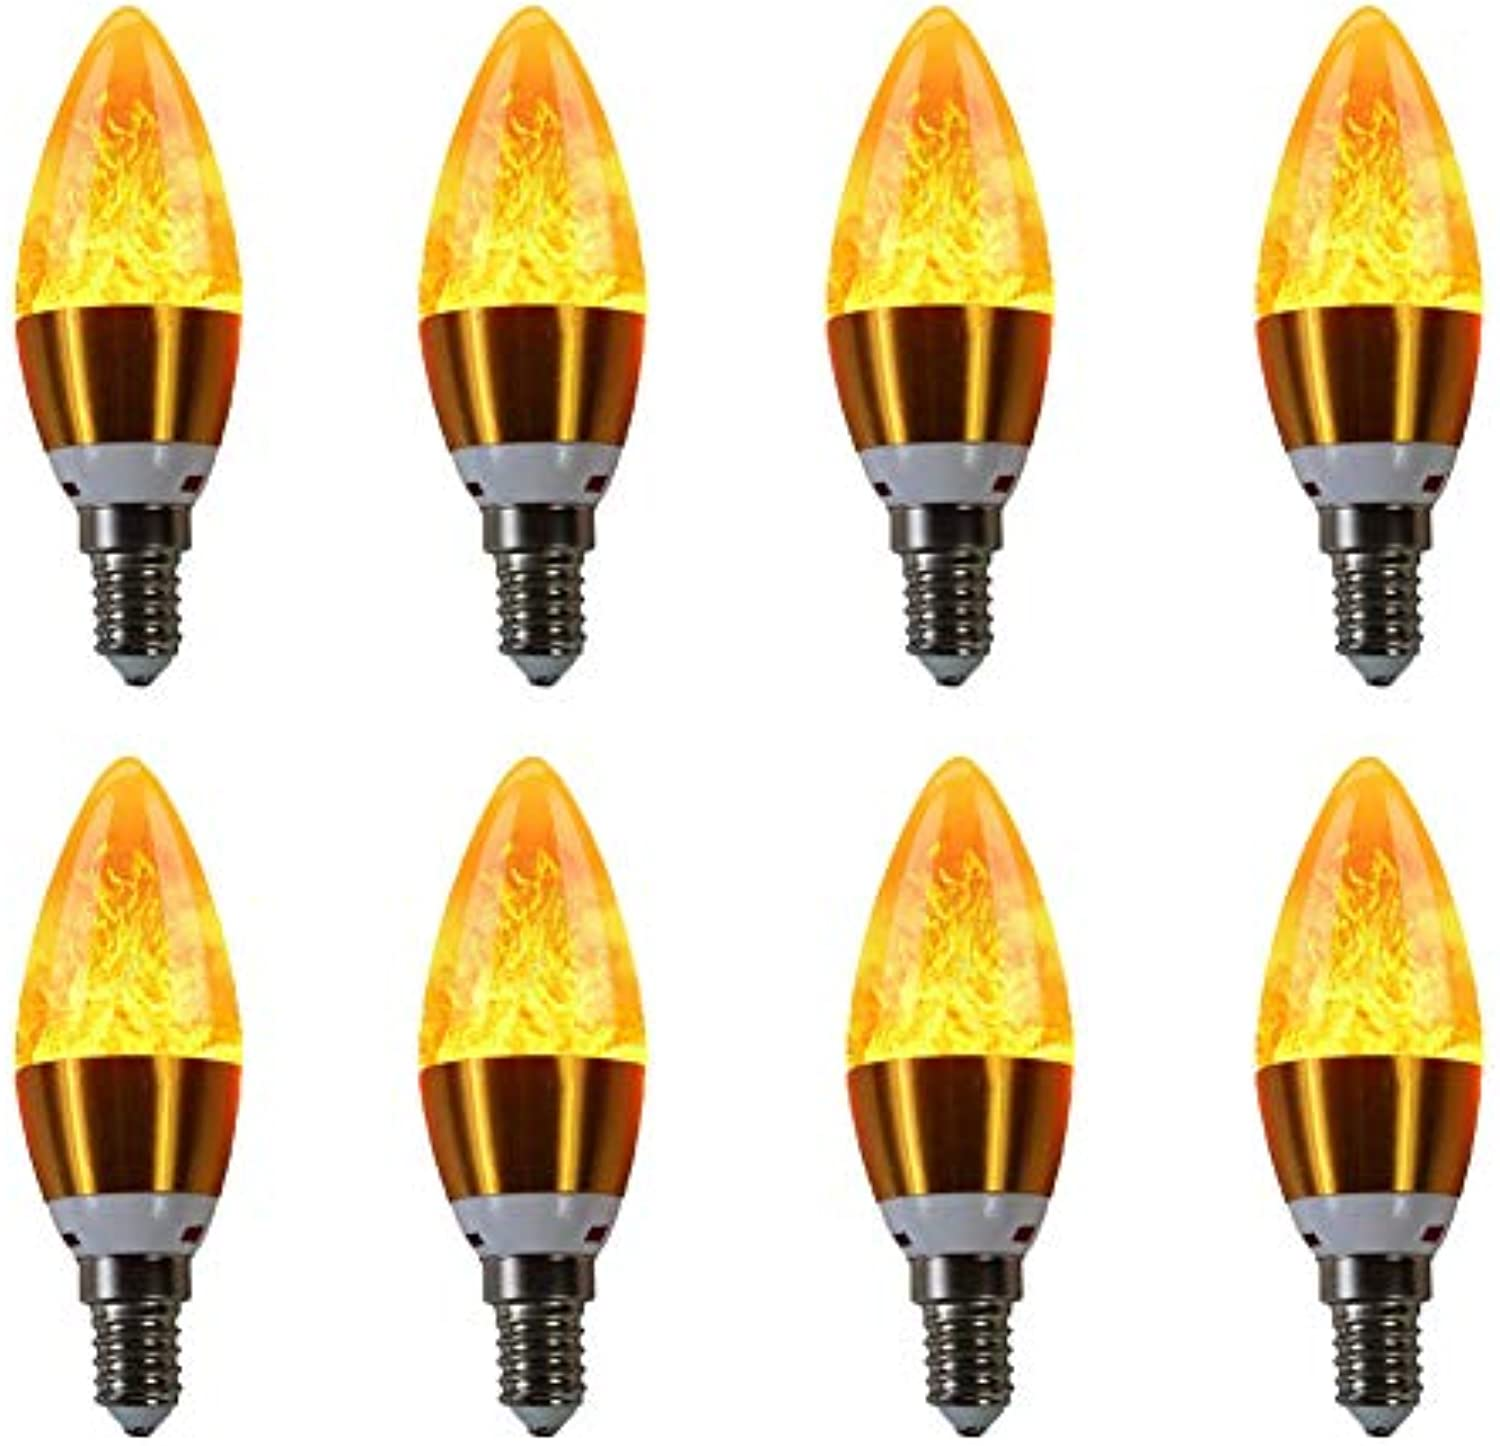 Leisure City Flammenlampe Atmosphre Dekorative brennende Birnen Antike Laterne Glühbirnen Kandelaber Licht mit E12 Standard Base für Hauptdekoration Restaurants 8 Pack